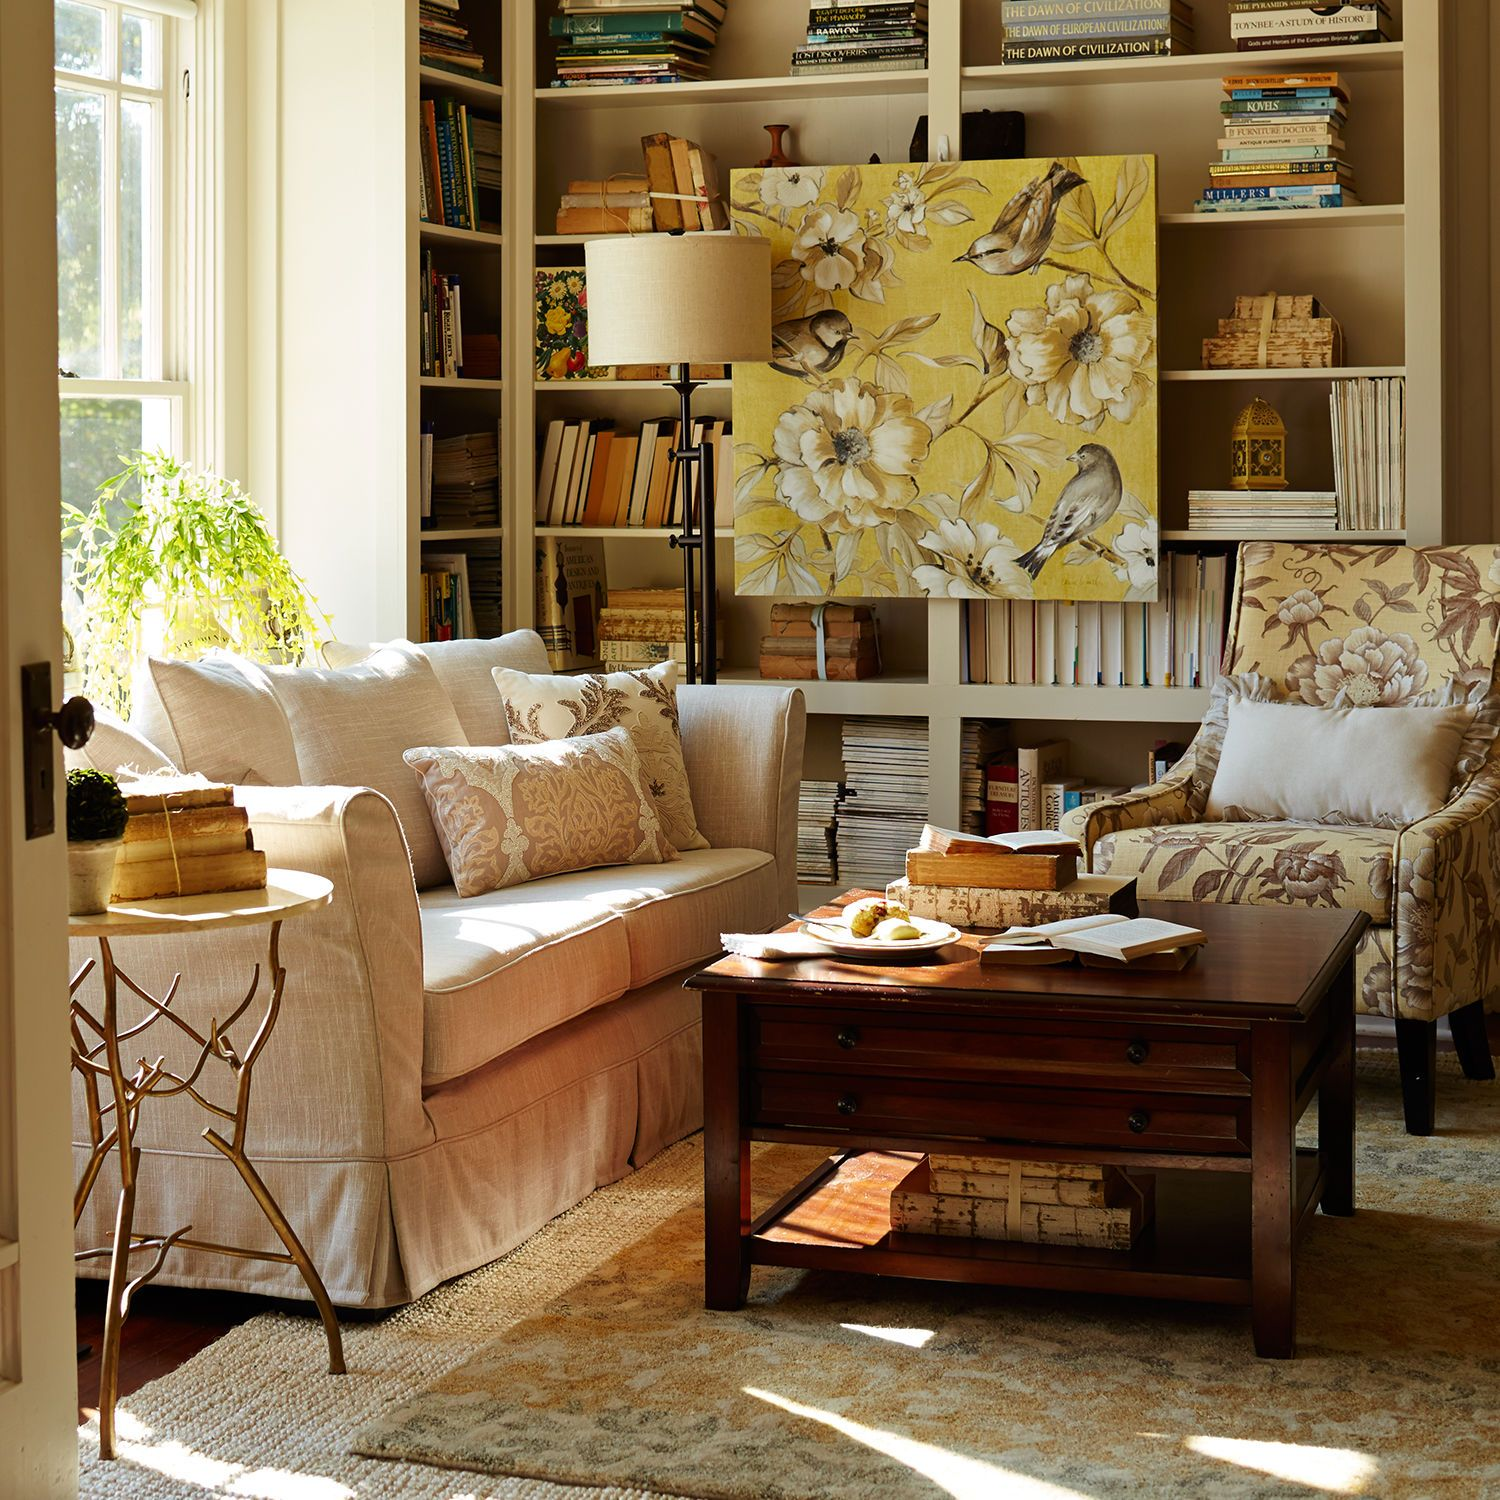 Pier One Living Room Ideas: Flax At Pier 1 Just The Right